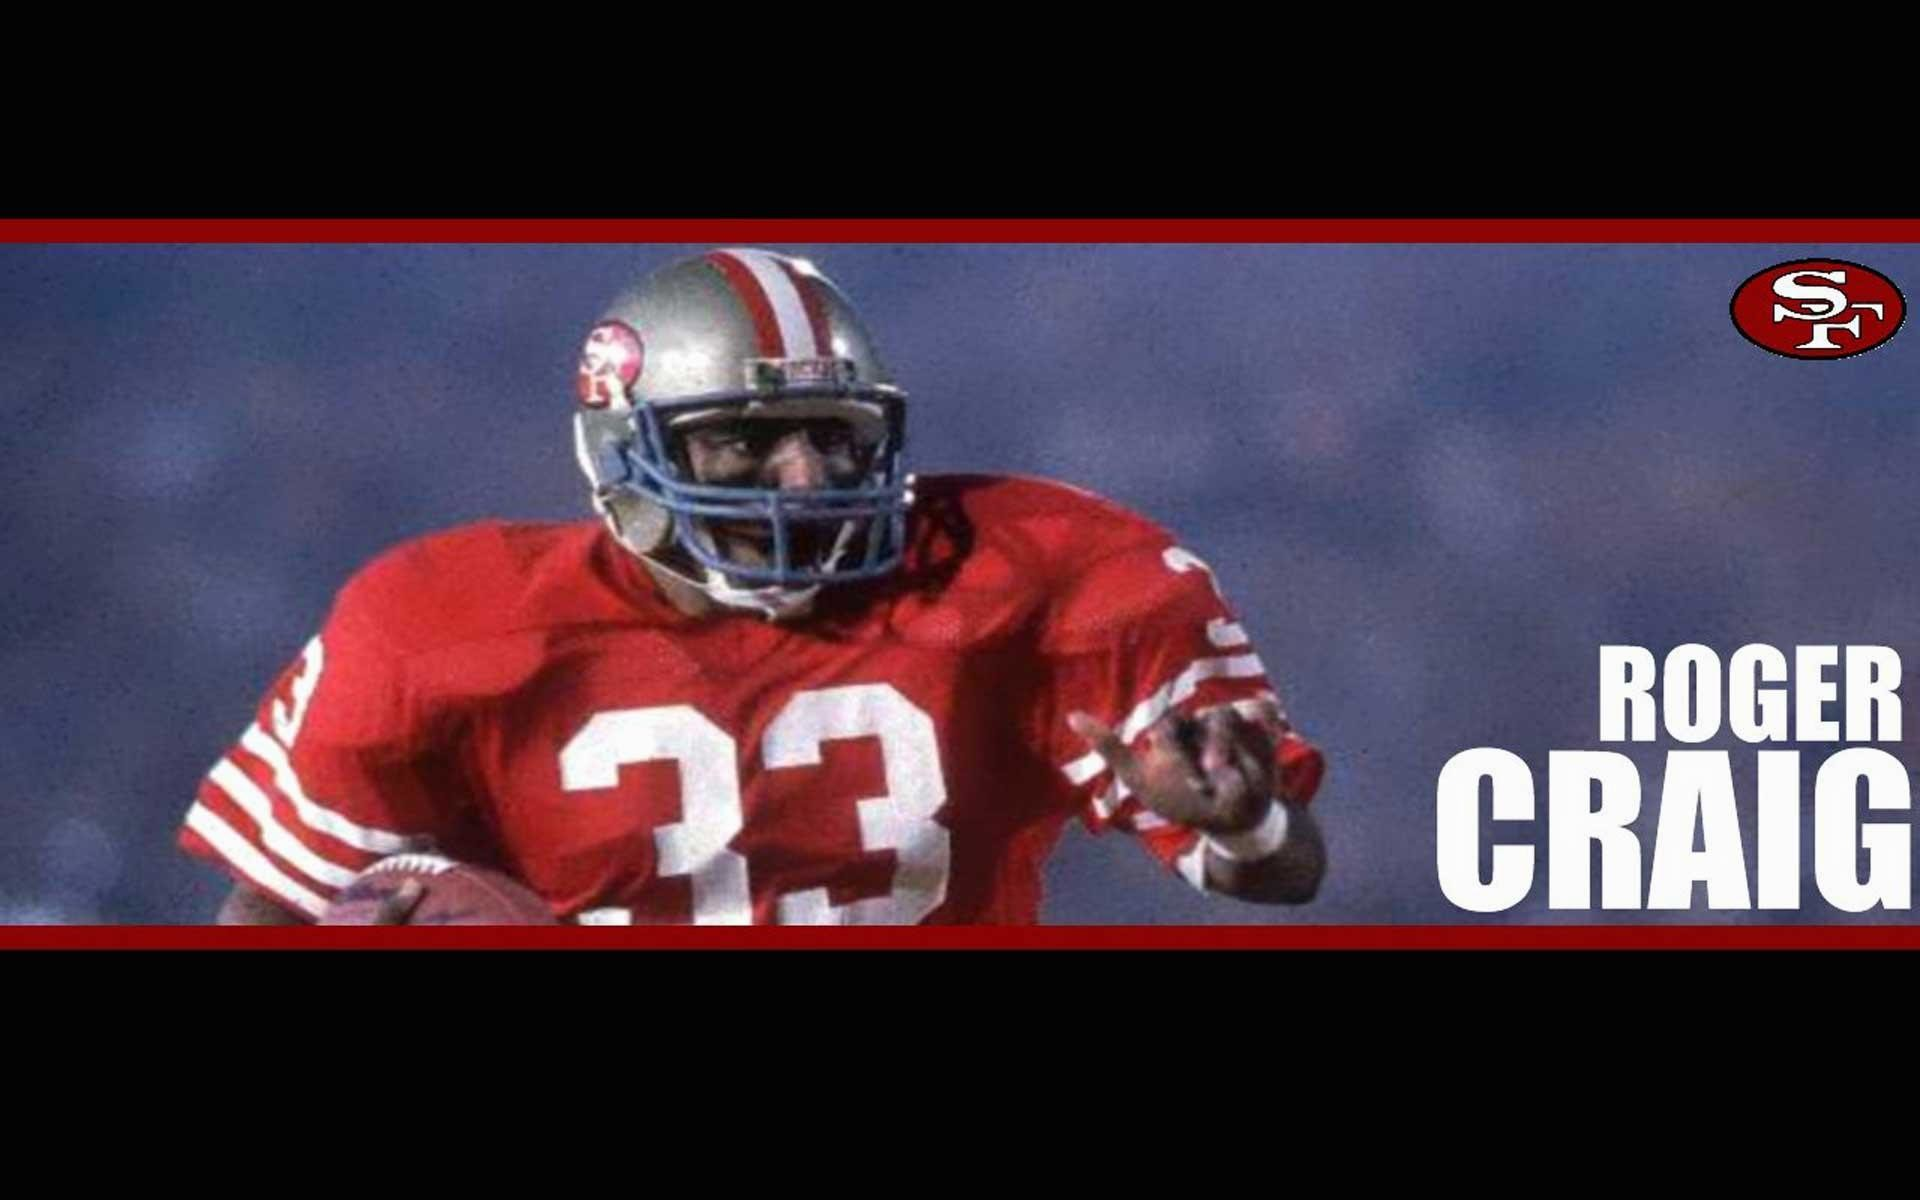 Roger-Craig-SF-49ers-Wallpapers